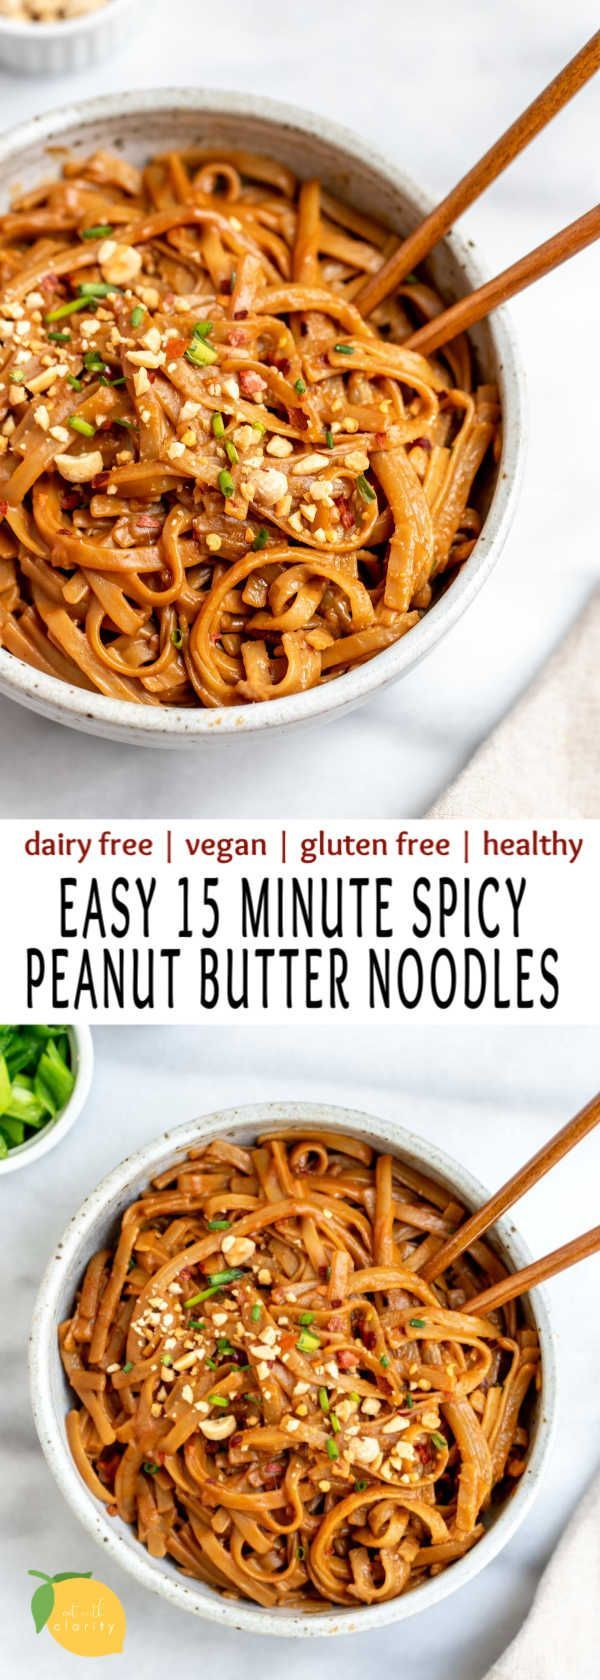 Photo of #Butter #Healthy Recipes For Two #Minute #Noodles #Peanut #Spicy Spi